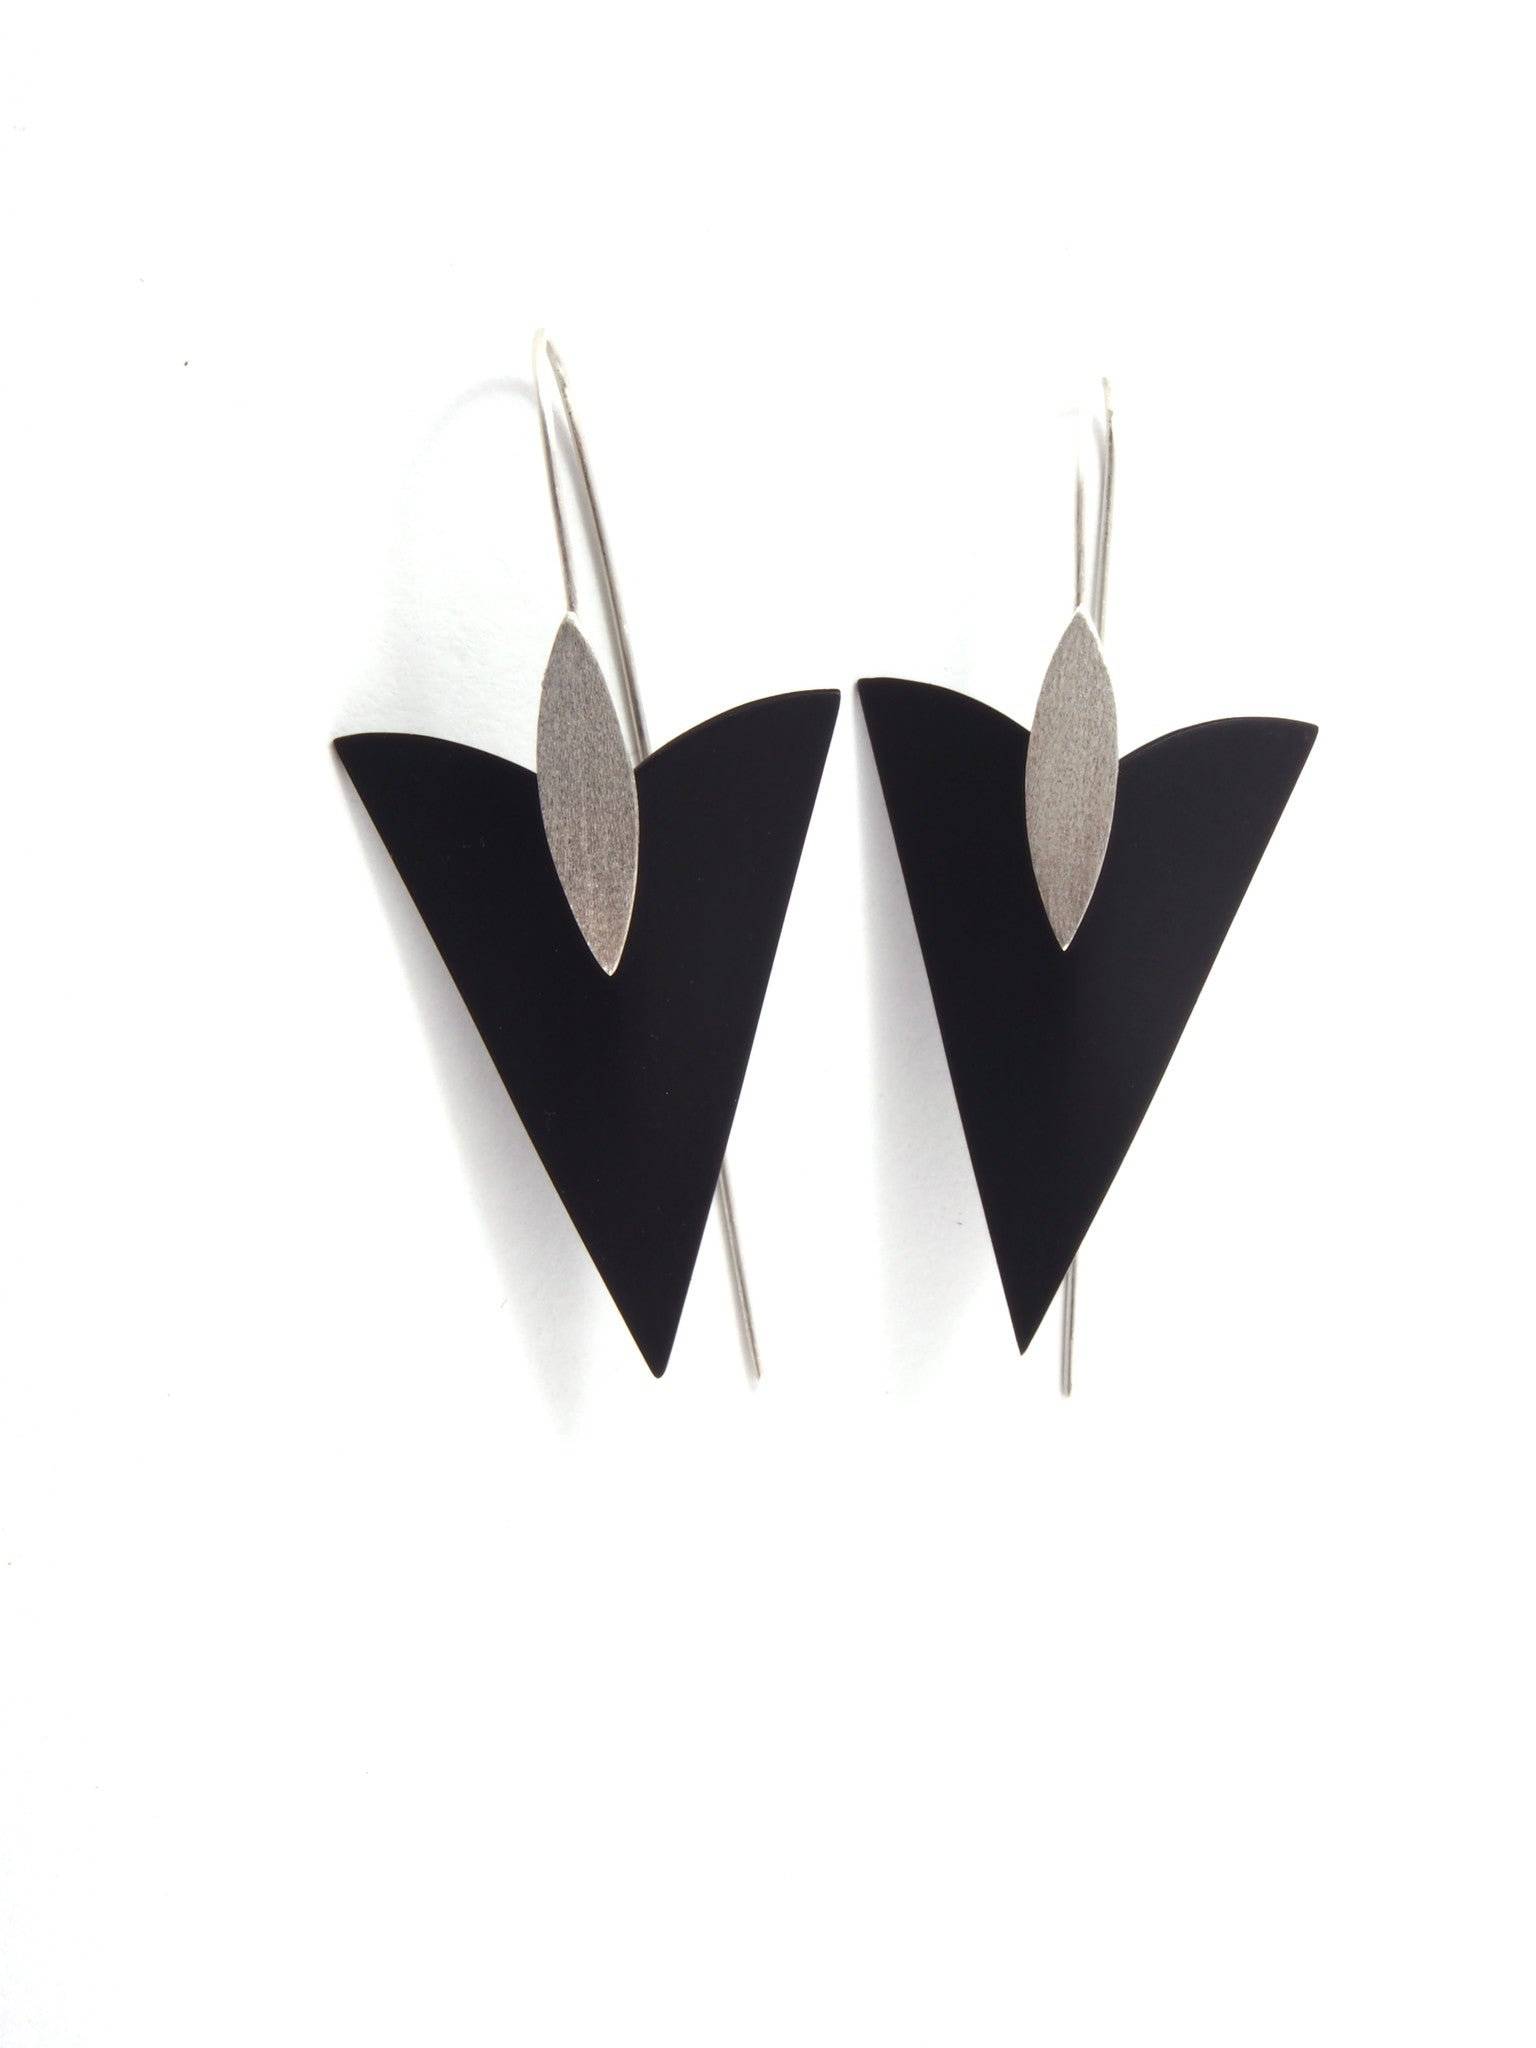 Botanica montane - earrings inspired by the mountain plants of Tasmania